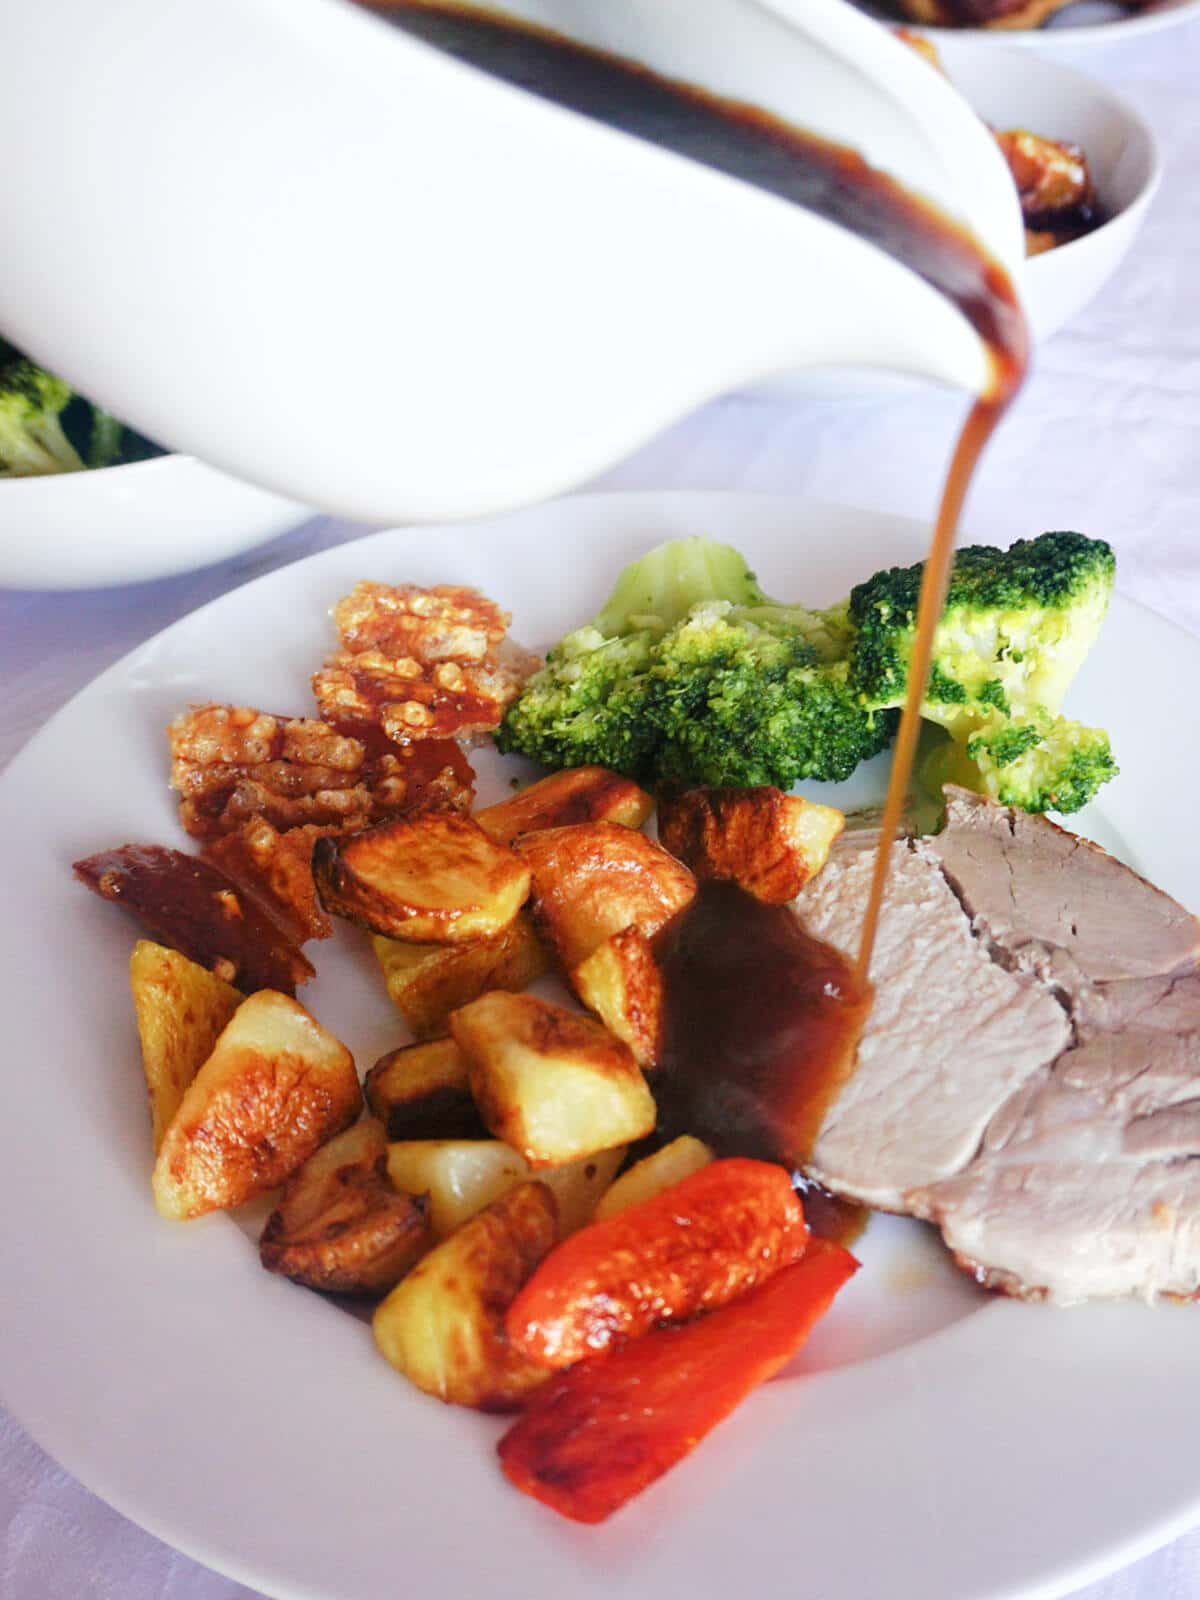 Gravy being poured over a slice of roast pork with vegetables on a white plate